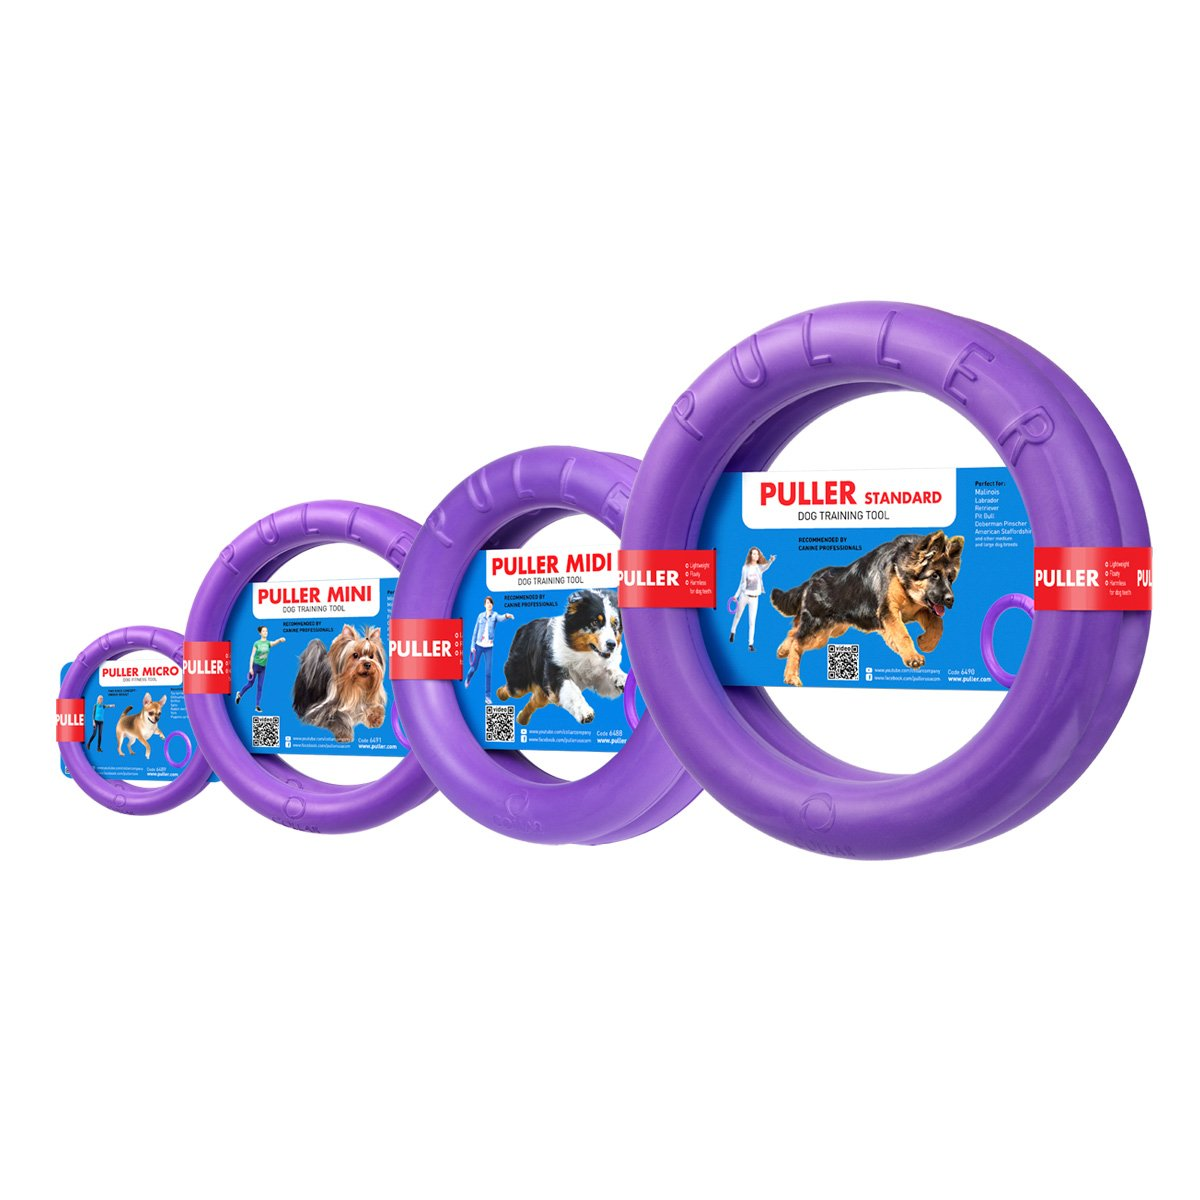 Dog toys rings – interactive large medium dog training – large Medium Size Dog Toy for Fetch Catch Throw Tug War Plays - Dental Healthy - Dog toys set two rings by Puller Plus - Size 11 inches